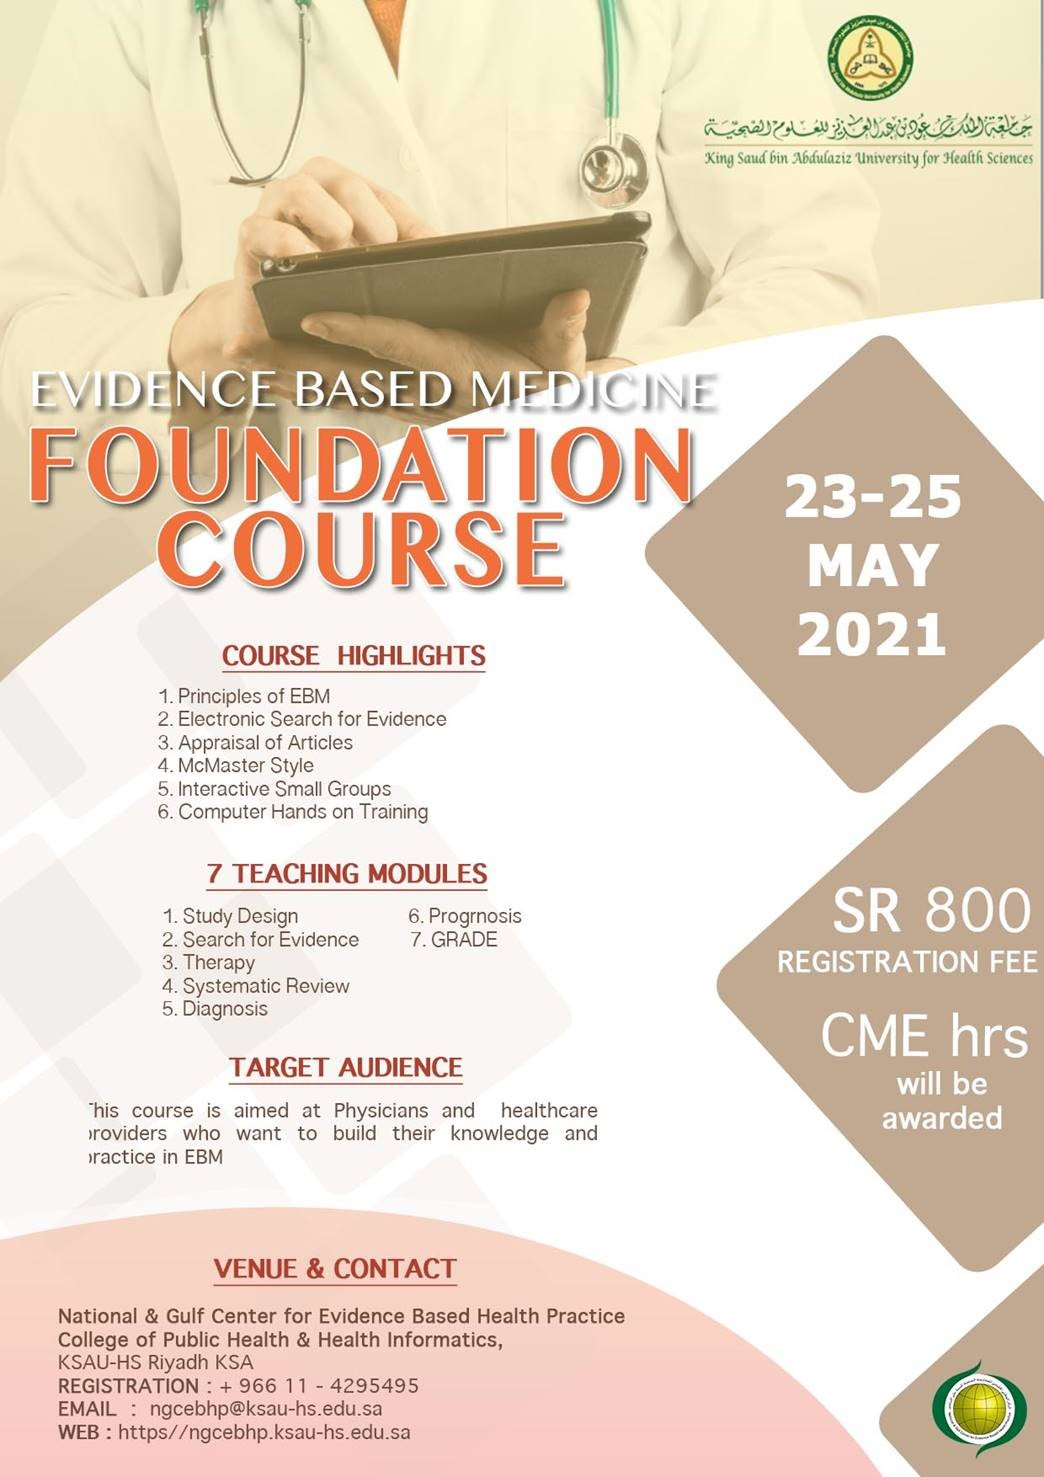 EVIDENCE BASED MEDICINE FOUNDATION COURSE (23 - 25 MAY 2021)